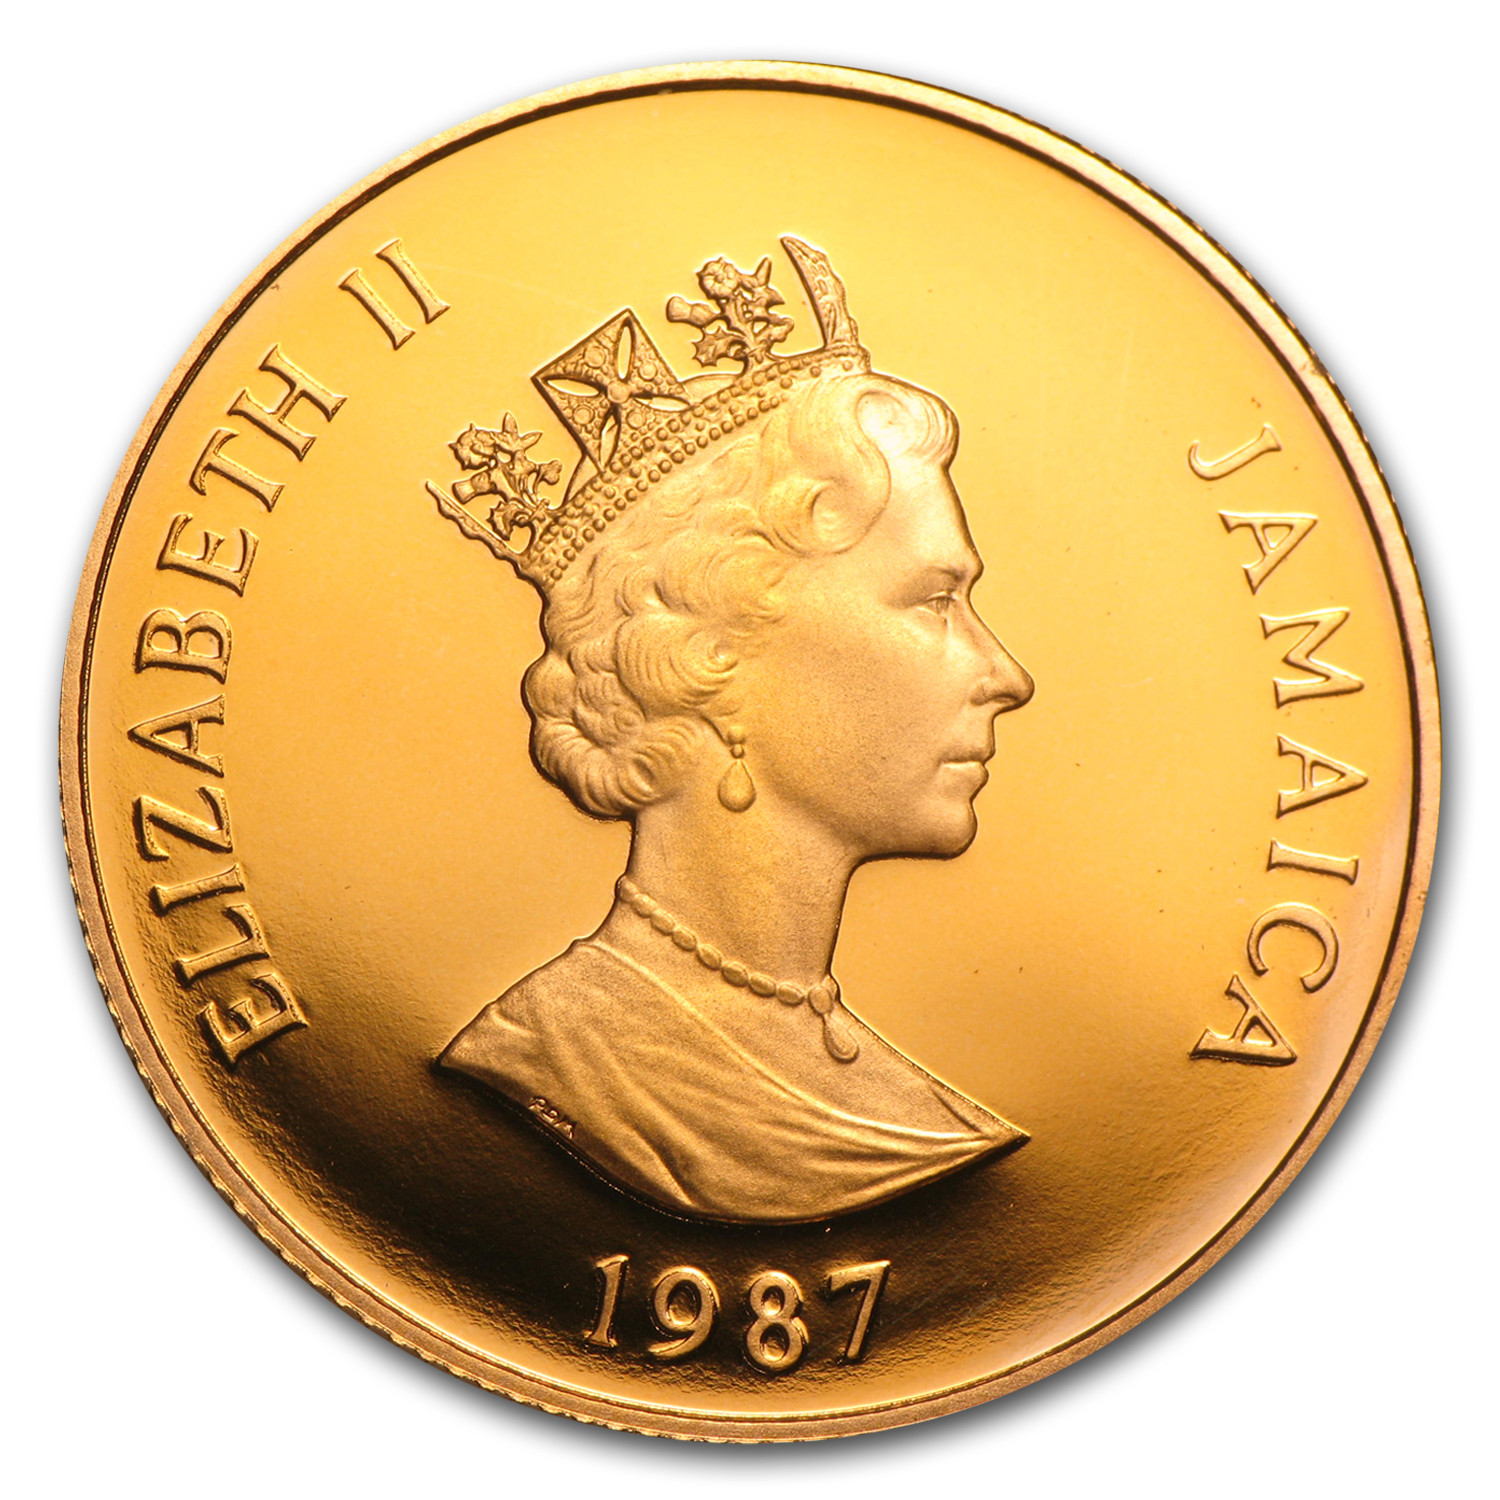 1987 Jamaica Proof Gold $250 Independence